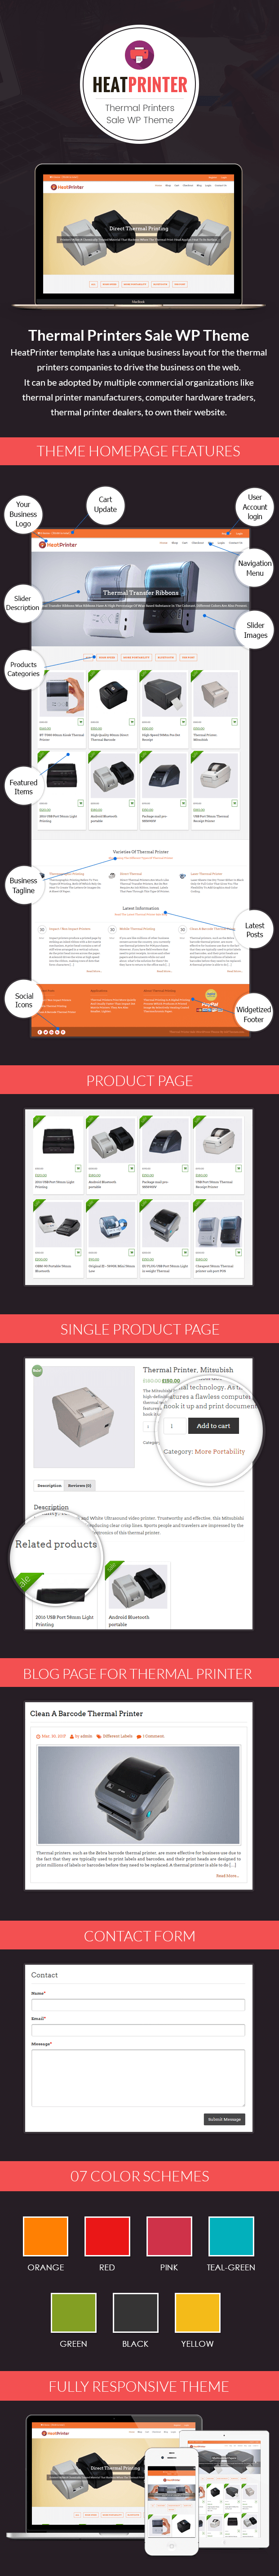 Thermal Printers Sale WordPress Theme Sales Page Image